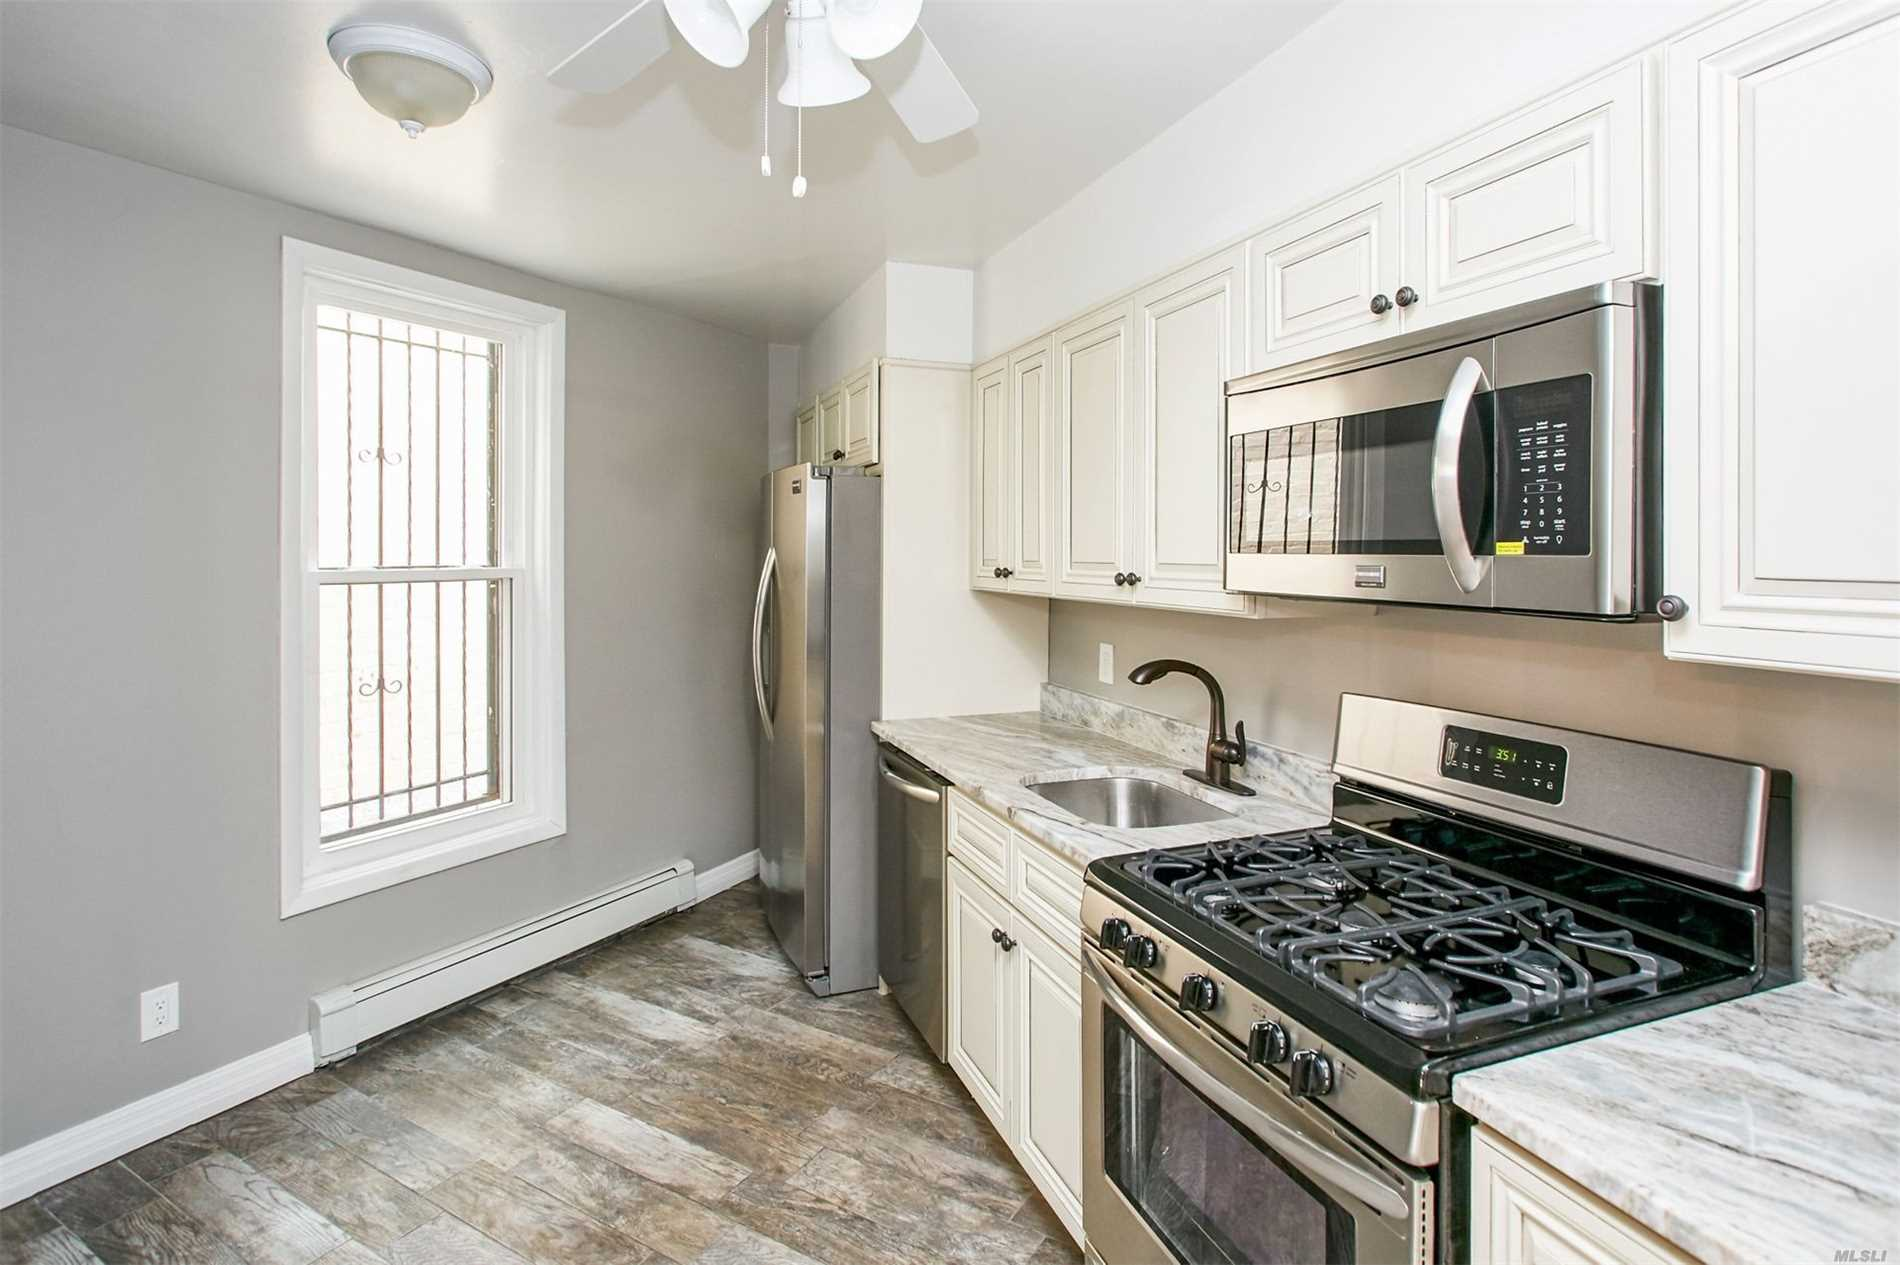 Flawlessly Renovated With New Kitchen, New Bathroom, Refinished Hard Wood Floors And All Fixtures. Spacious & Bright Corner Unit With 2 Large Bedrooms Or Bedroom + Living Room. Heat & Water Included, Tenant To Pay Electric & Cooking Gas. Close To All & Half Block To The Beautiful Forest Park.